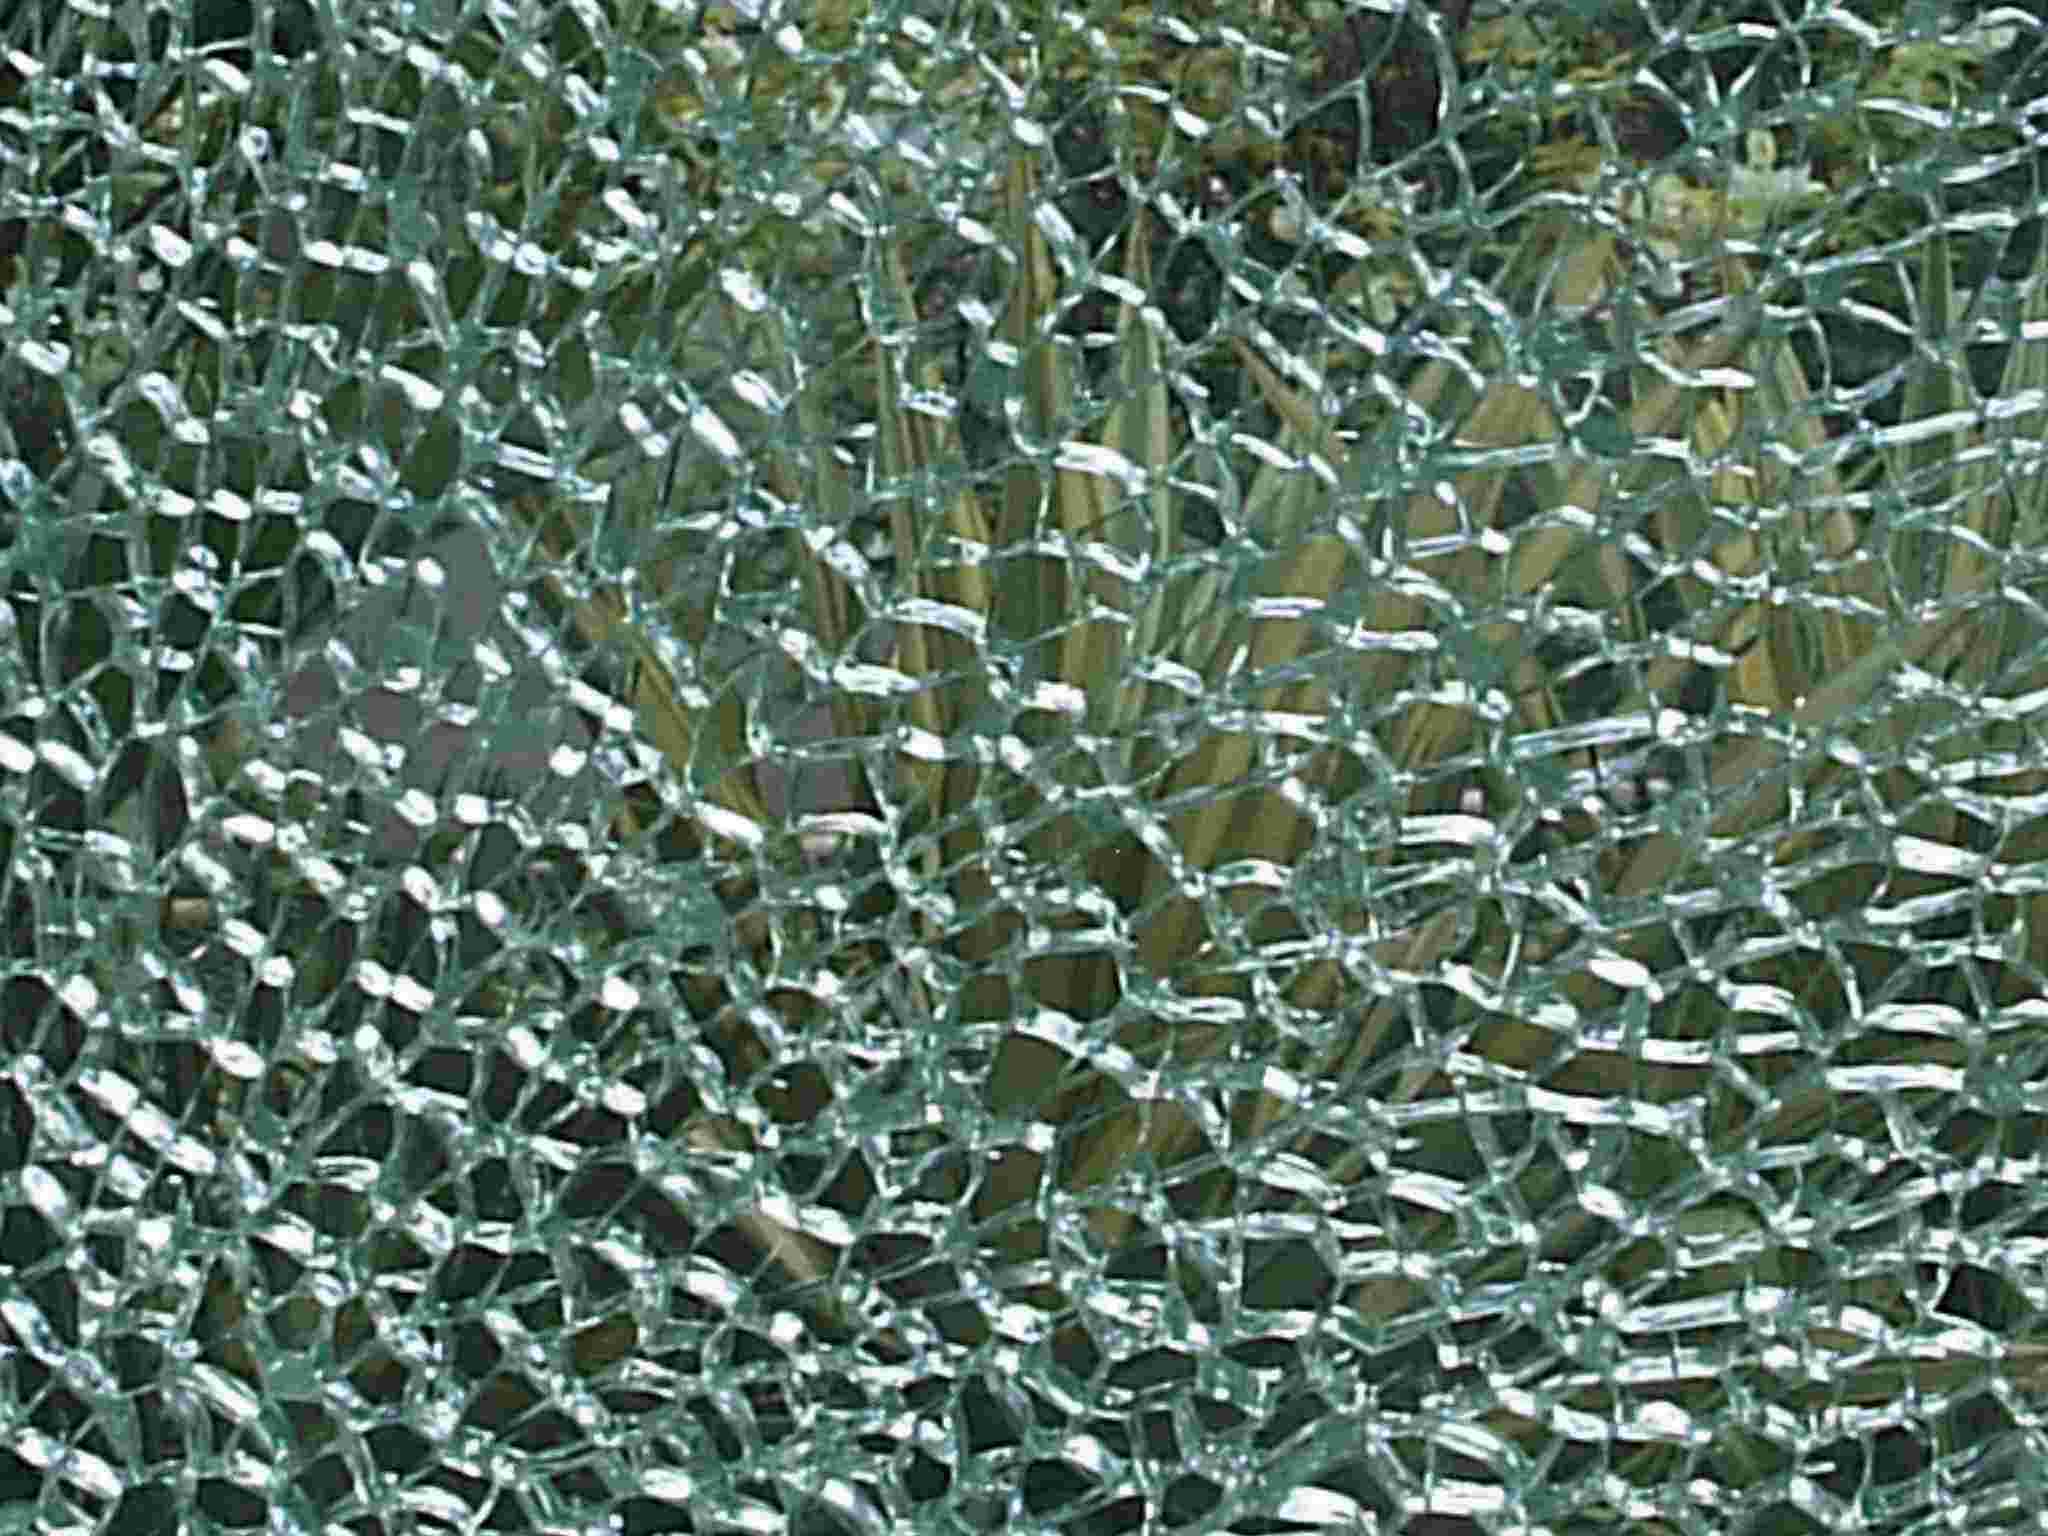 tempered glass The composition and make of laminated glass is different as compared to tempered glass making it suitable for different applications we will be looking at both the minor and major differences that make these two types of glass suitable for different purposes.